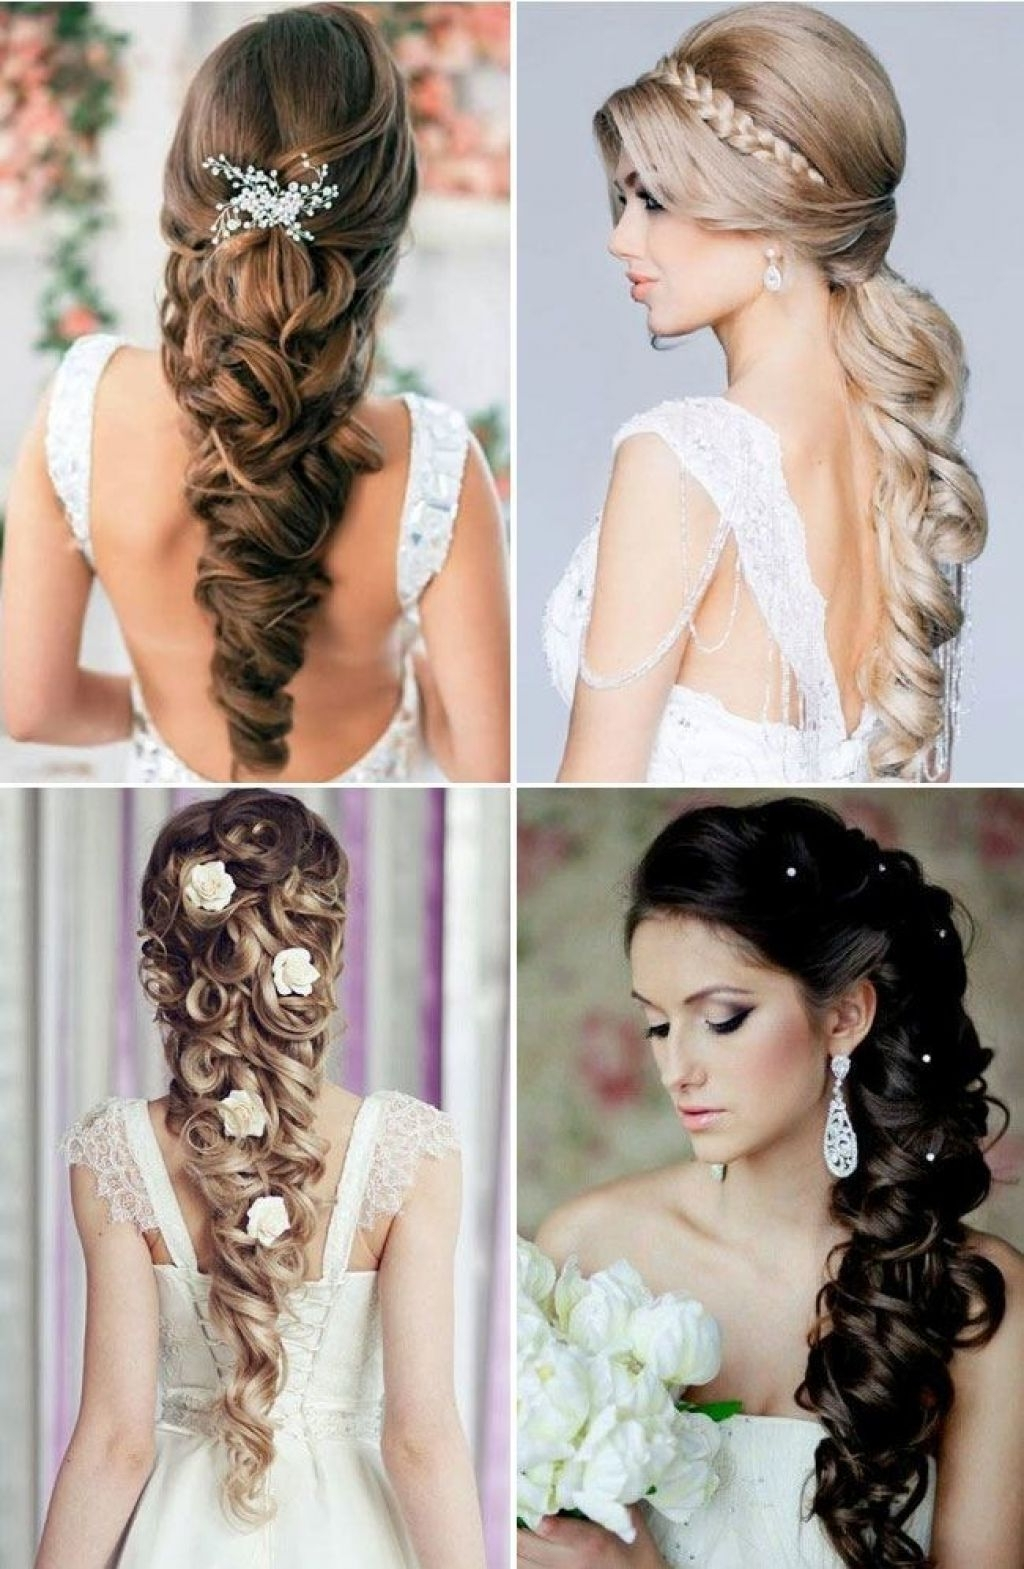 2017 Wedding Updos For Long Hair With Braids In Updo Hairstyles Long Curly Hair Prom Updos Simple Hairstyle Ideas (View 12 of 15)